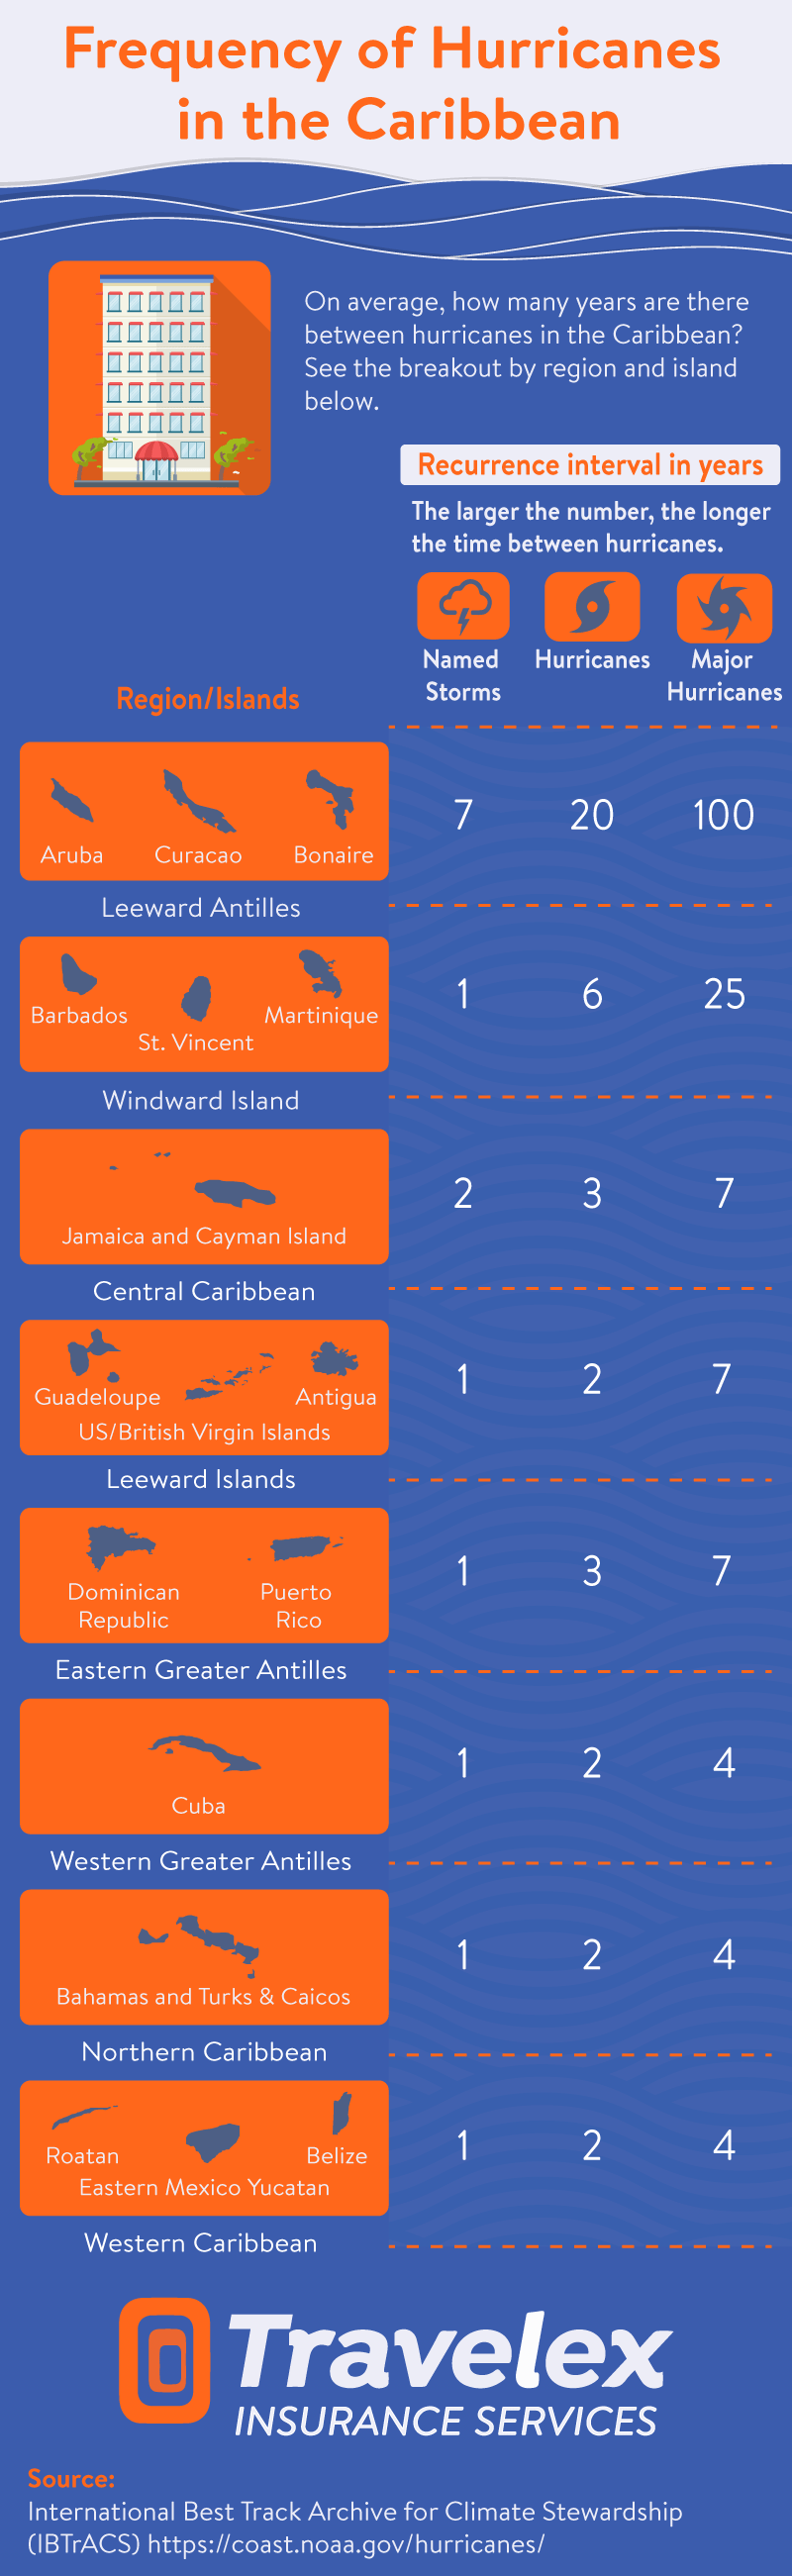 Frequency of Hurricanes in the Caribbean Infographic